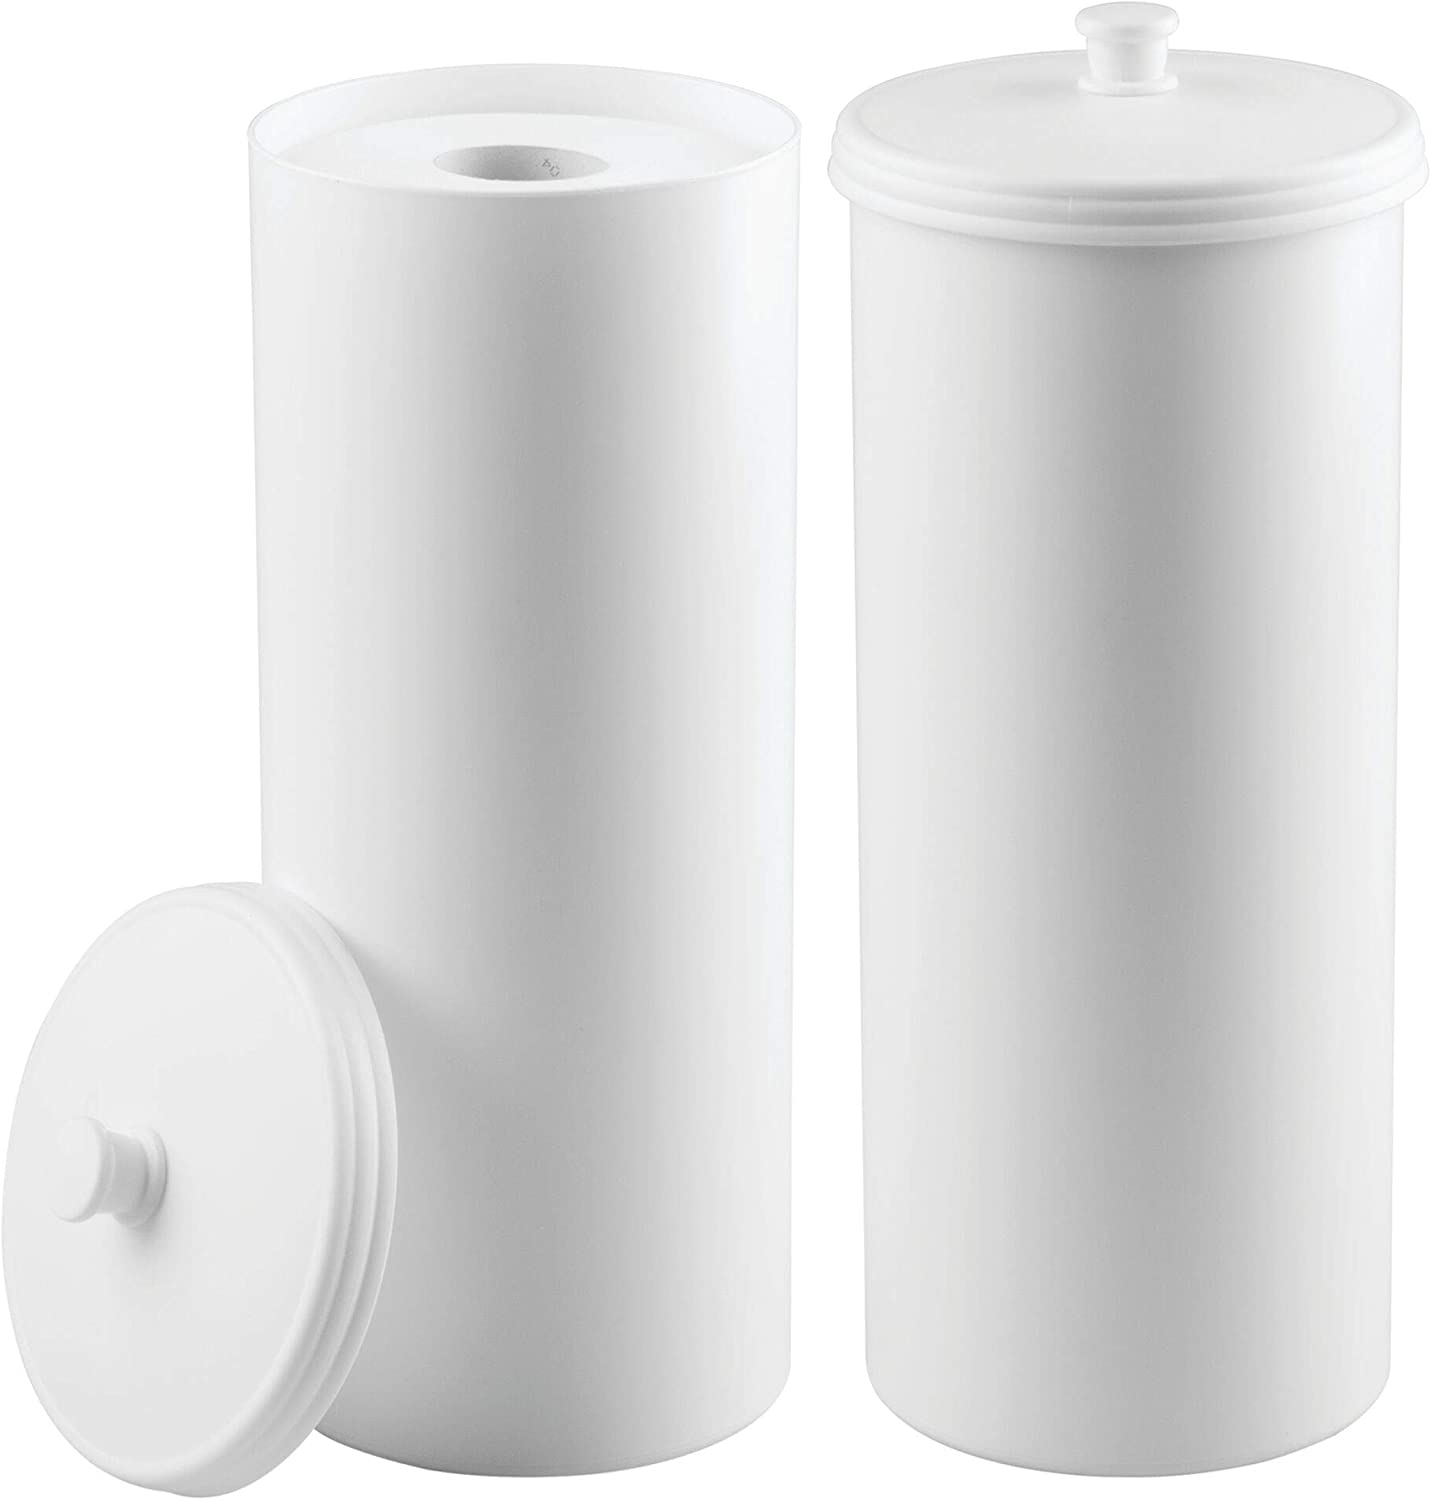 Mdesign Free Standing Toilet Paper Holder Canister With Lid For Bathroom Storage Pack Of 2 White Amazon Co Uk Kitchen Home